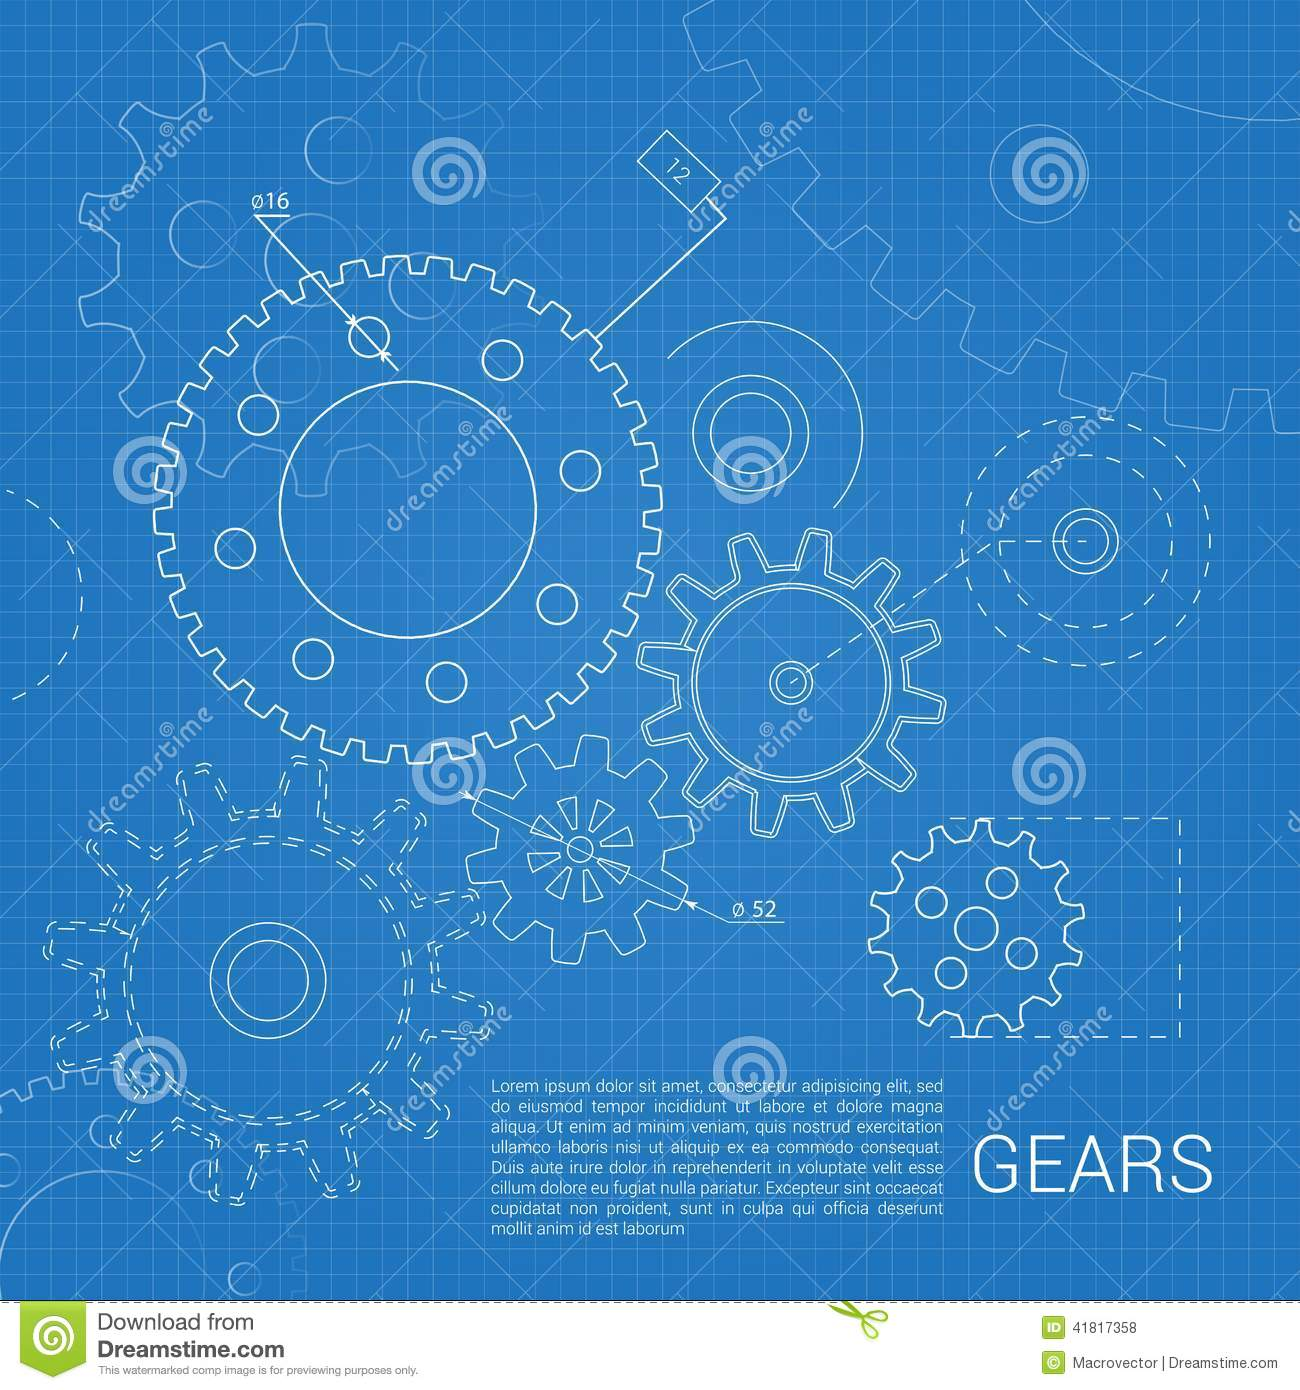 Gears drawing background